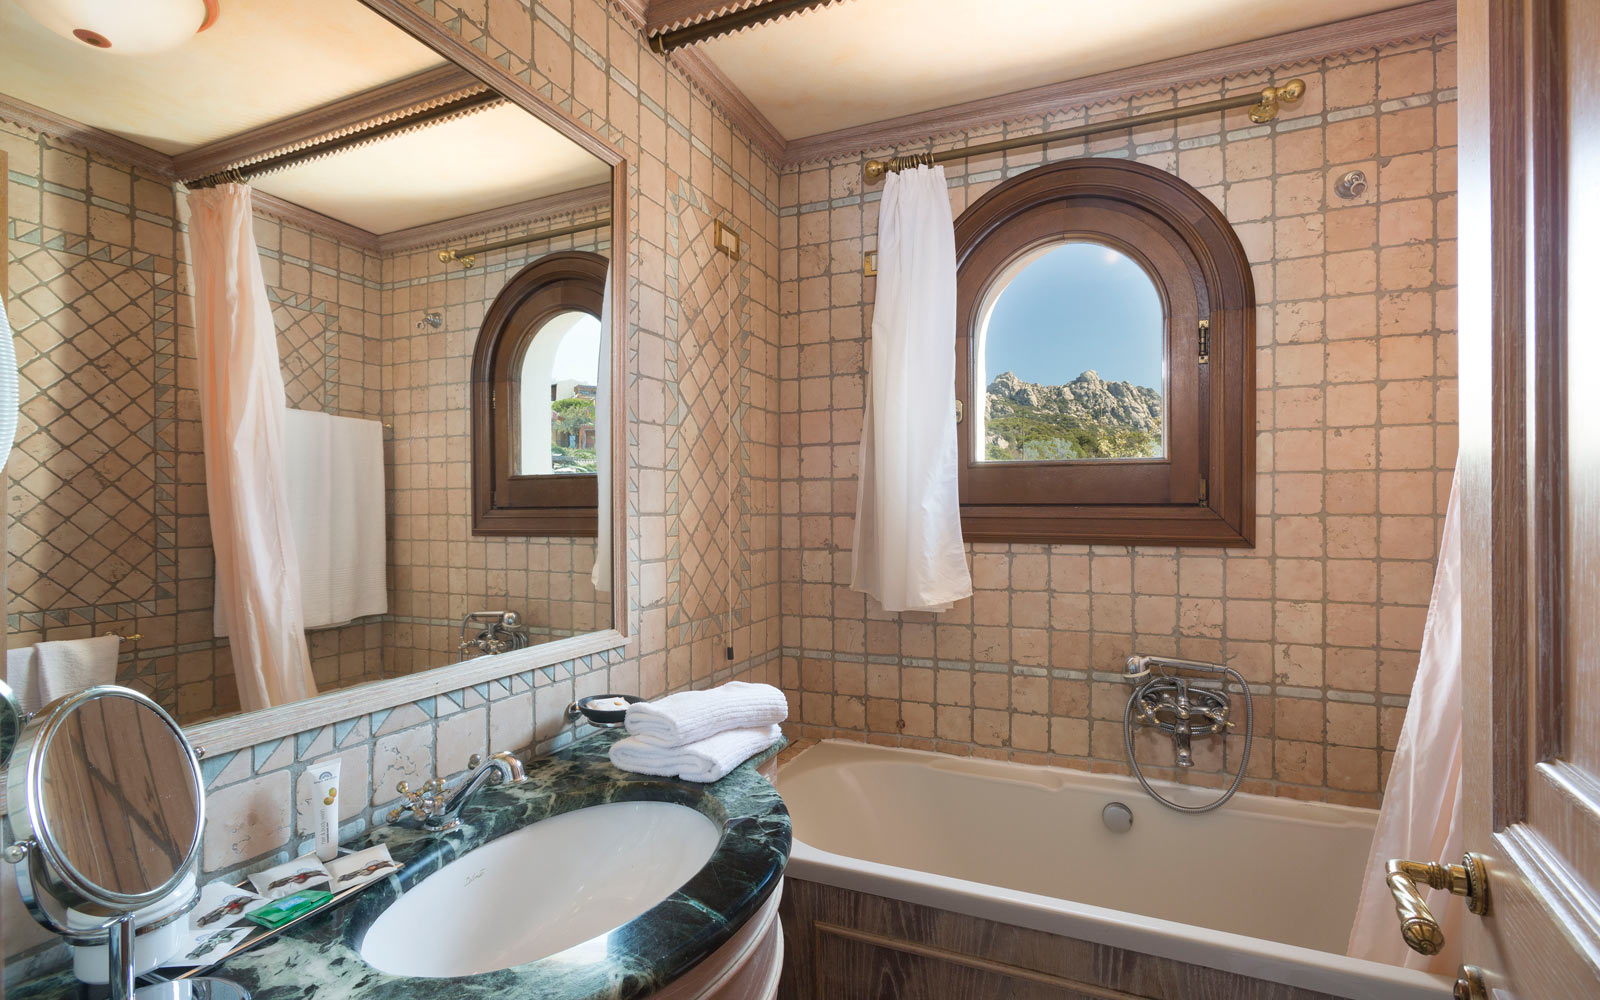 Bathroom Suite at Le Palme